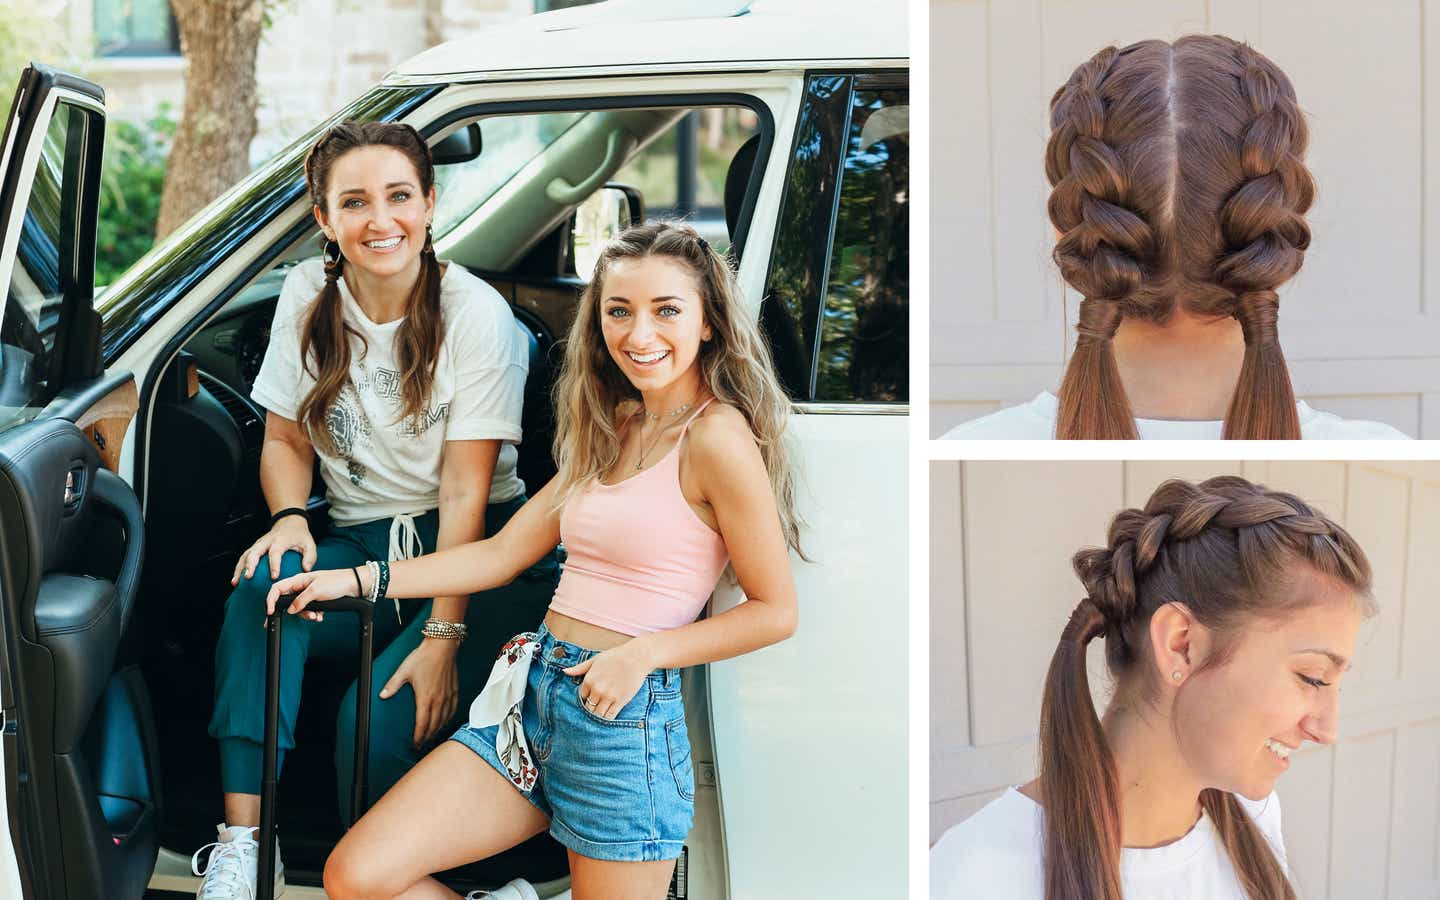 Left: Mindy and Kamri pose near their SUV with a pink suitcase in tow. Top-Right: Kamri sporting the dutch-braid hairstyle. Bottom-right: Kamri sporting the dutch-braid hairstyle from a profile.